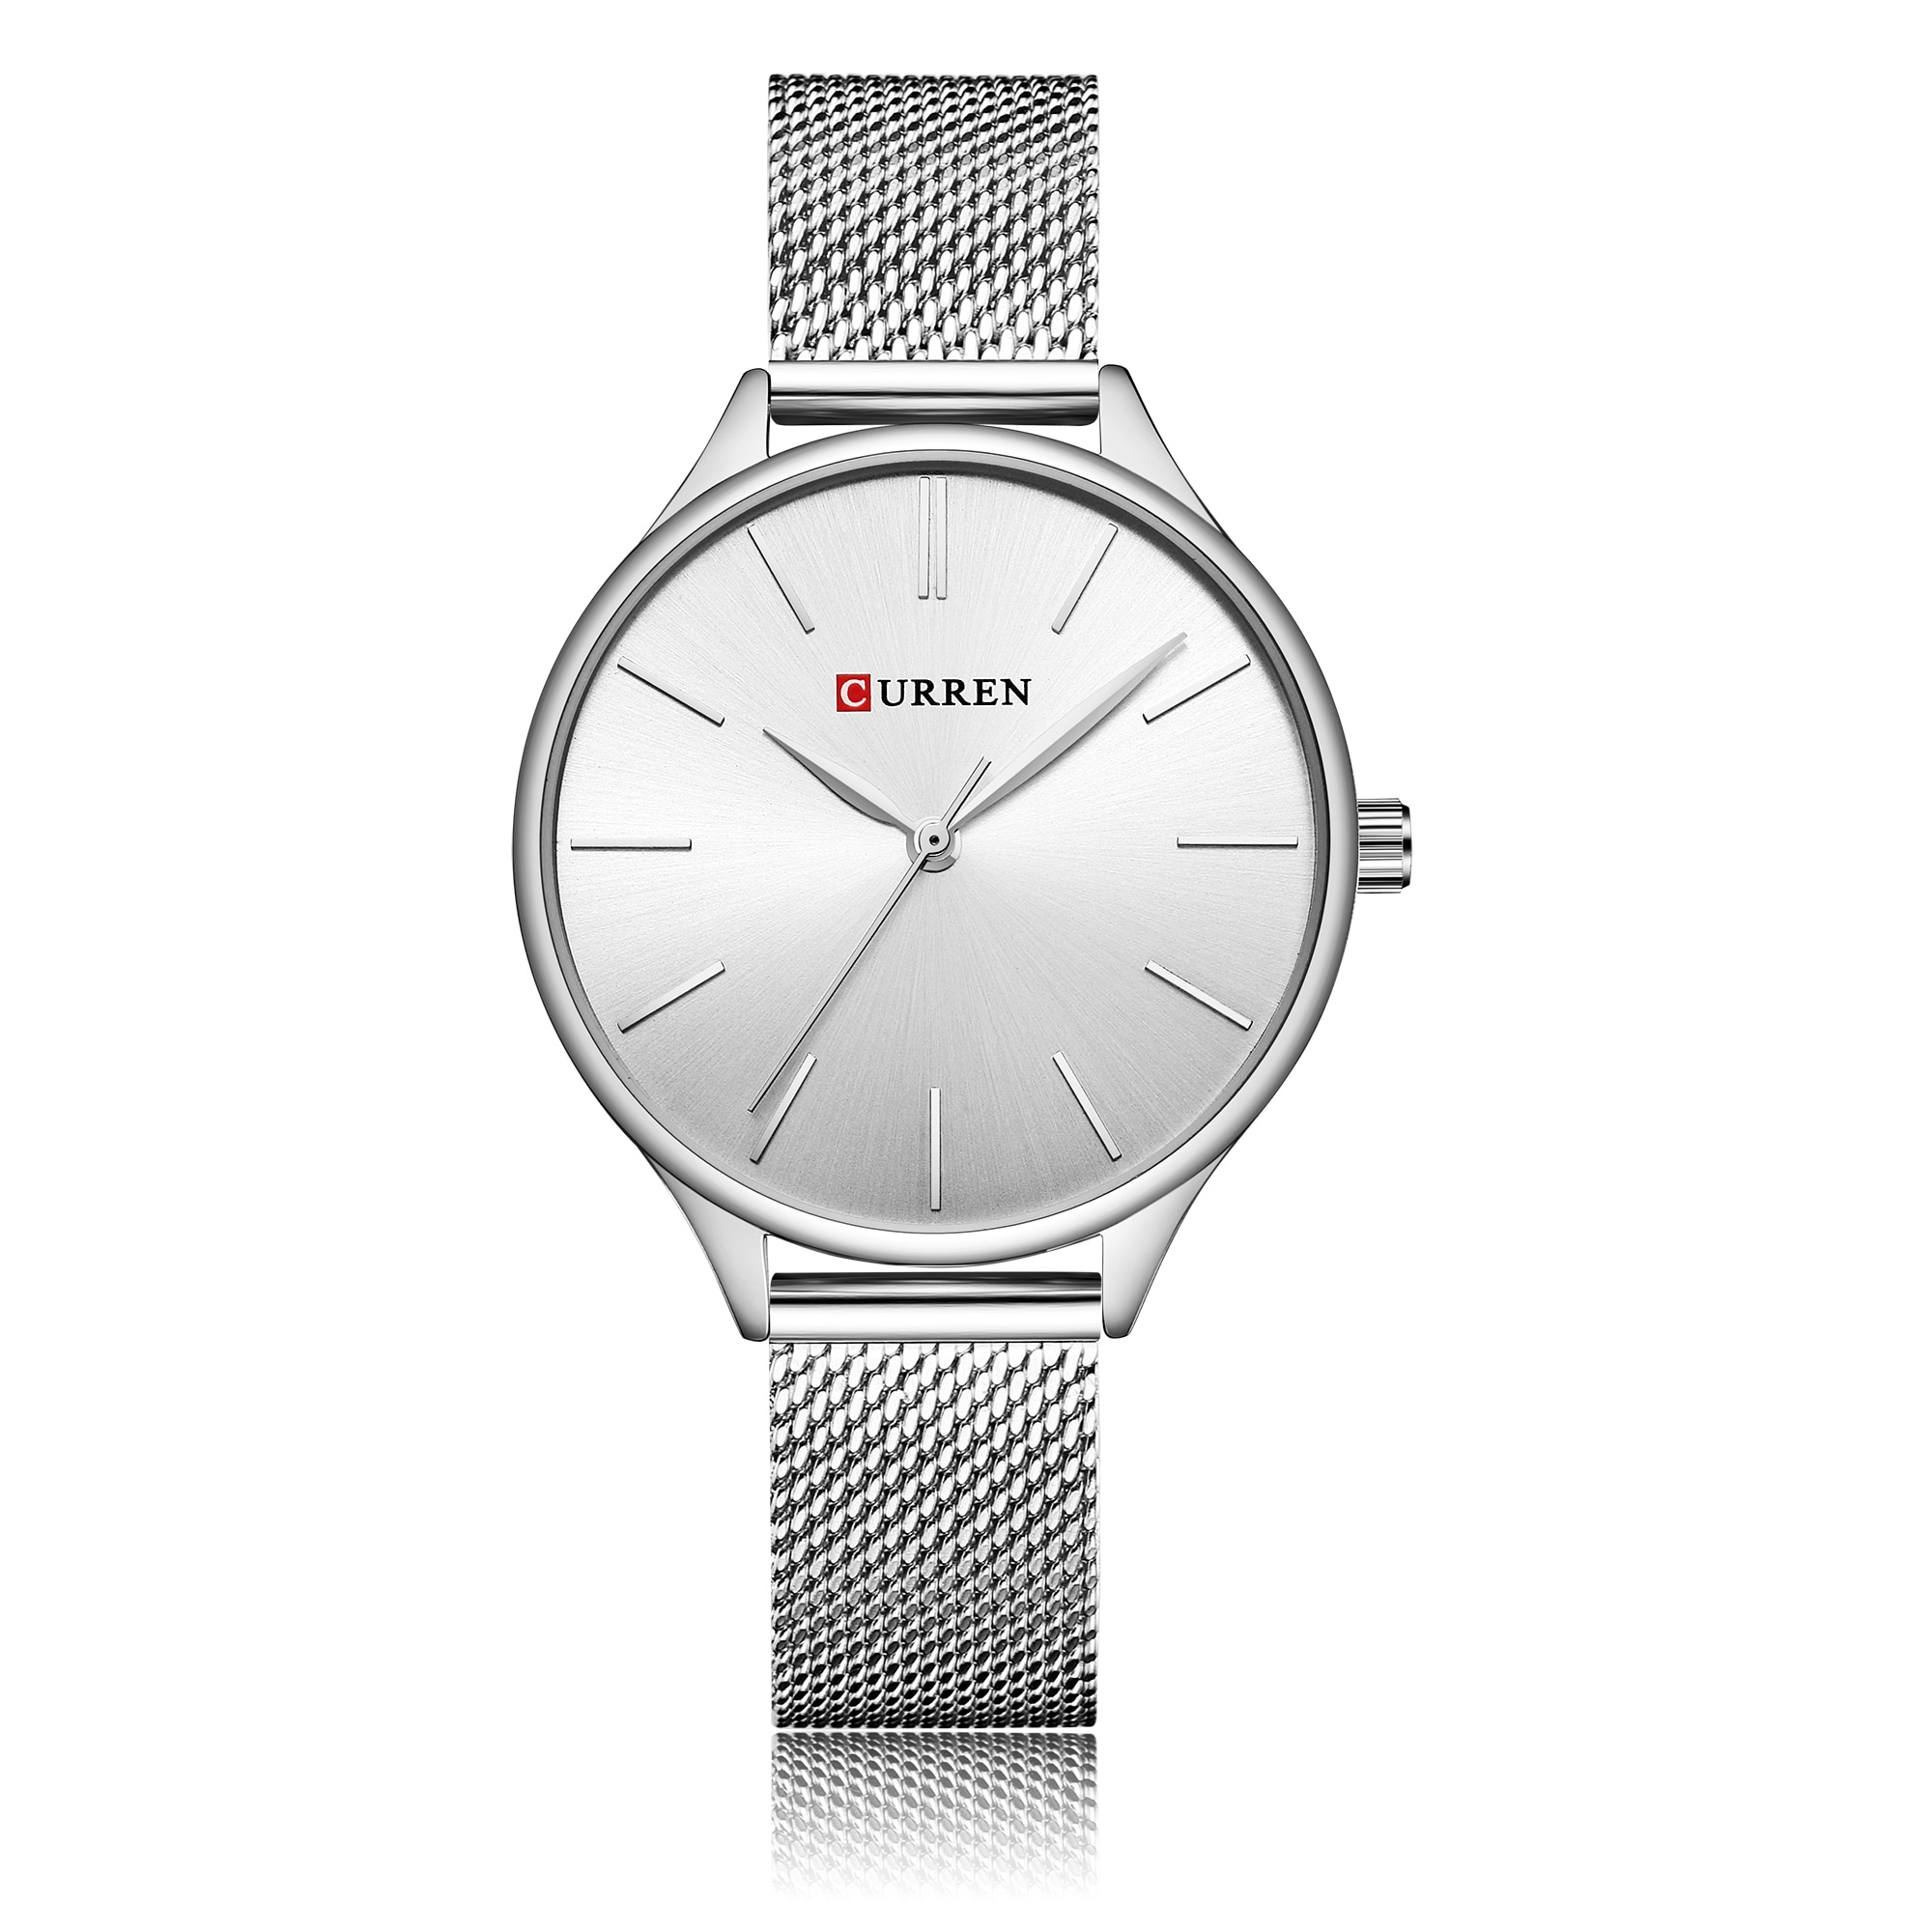 CURREN Classic Women Watches High Quality Casual Stylish Mesh Wristwatches Stainless Steel Simple Quartz Ladies Clock Dress Gift enlarge